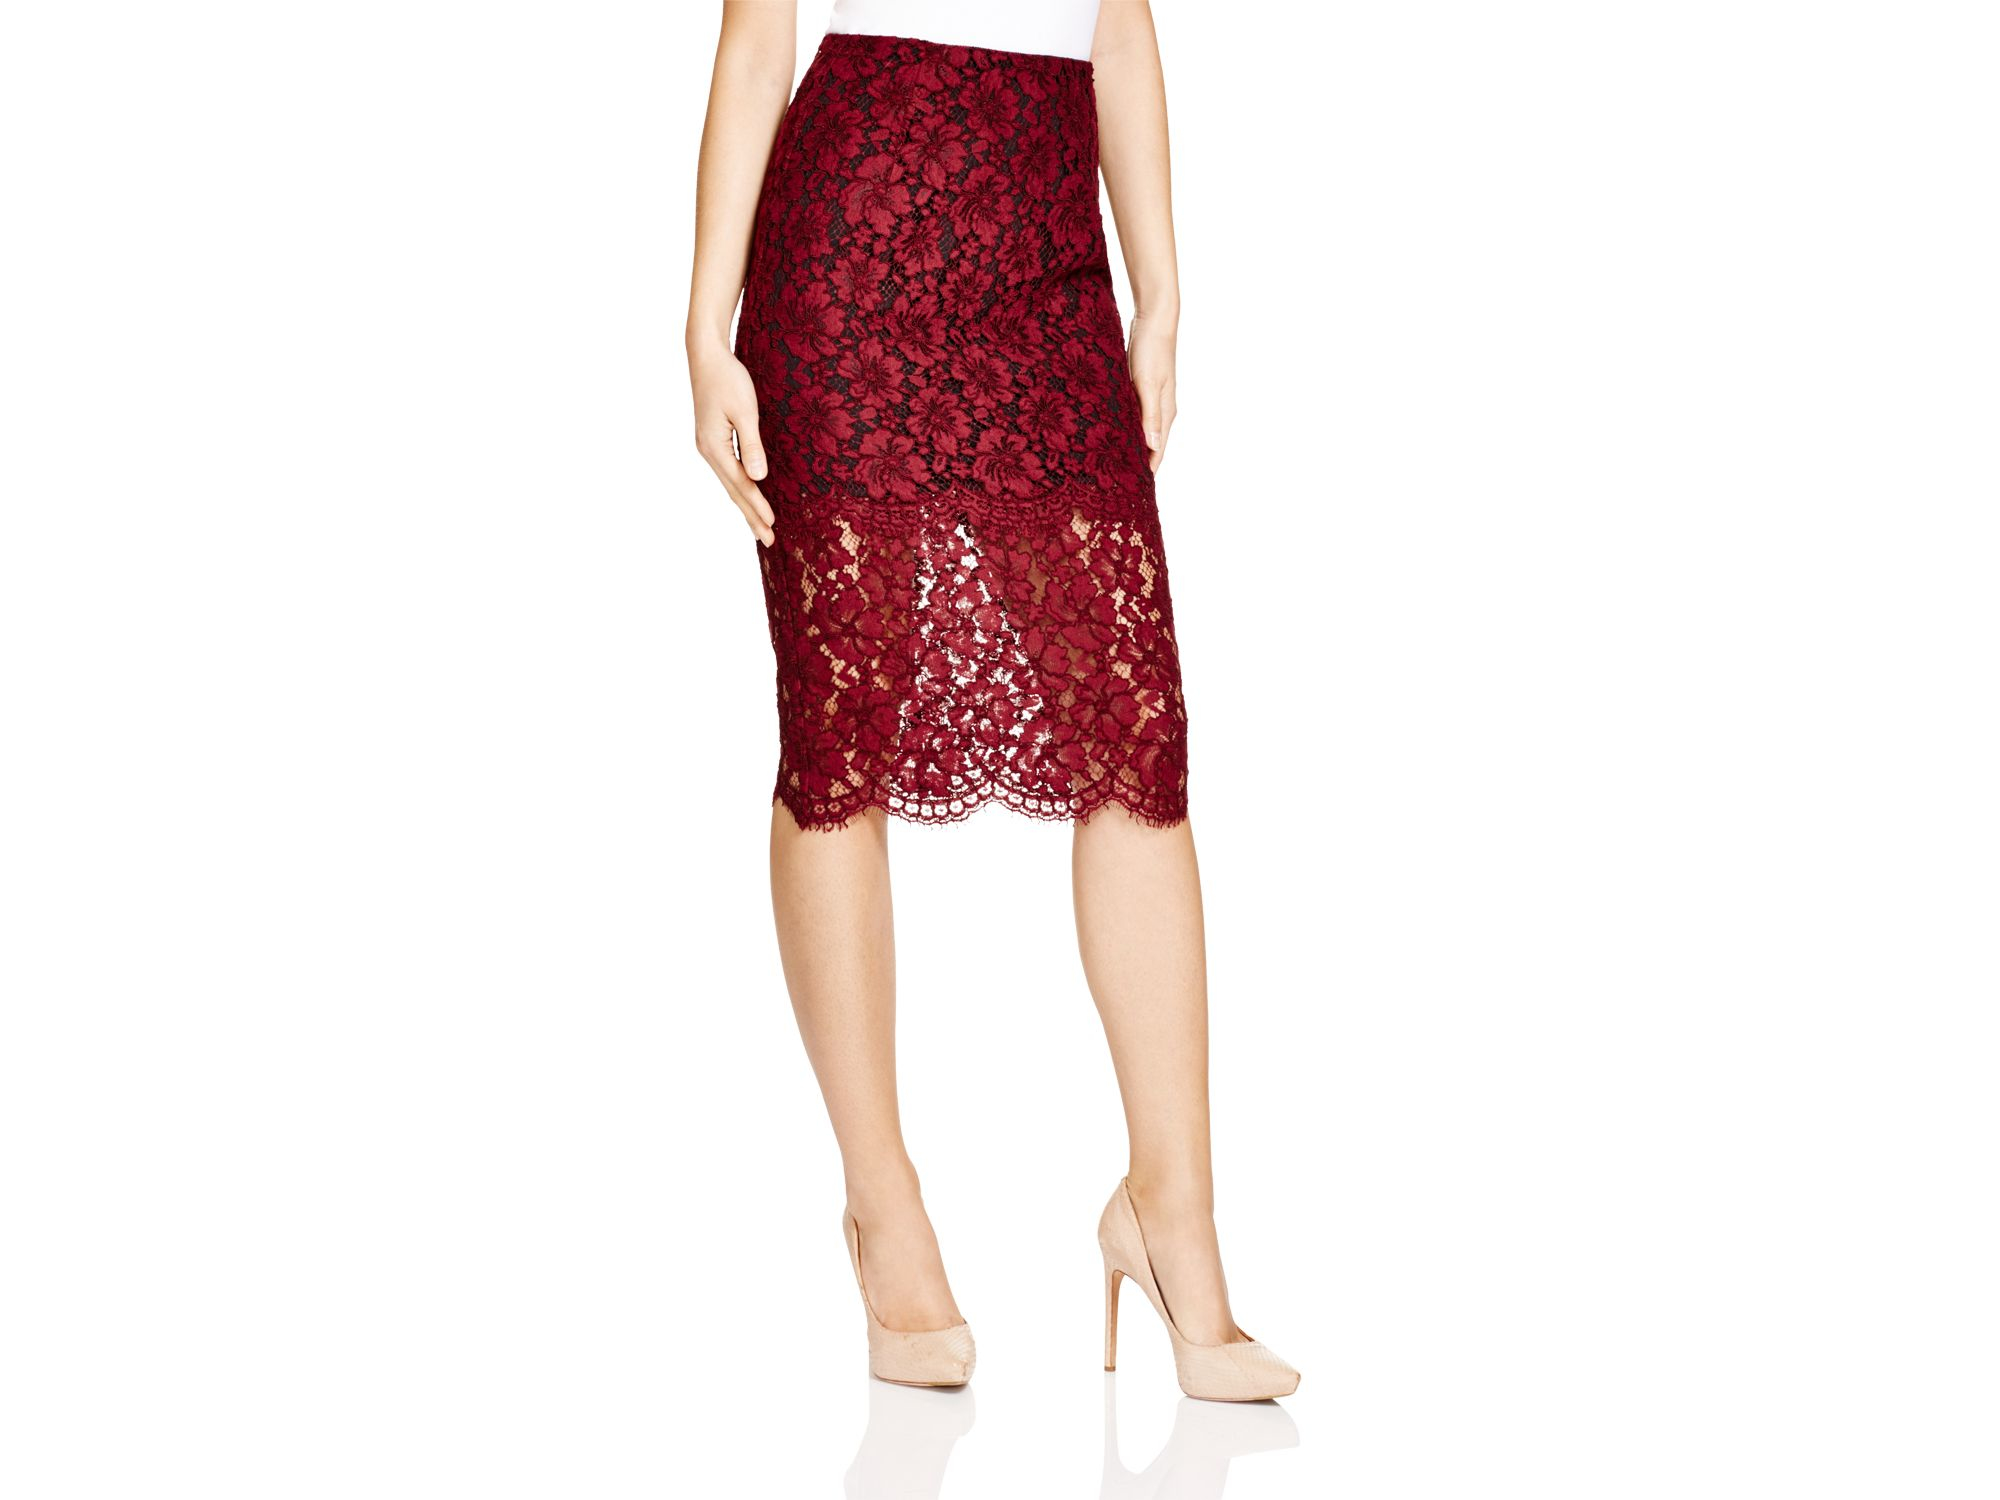 14bf24a28 Sandro Judy Lace Pencil Skirt - Bloomingdale's Exclusive in Red - Lyst